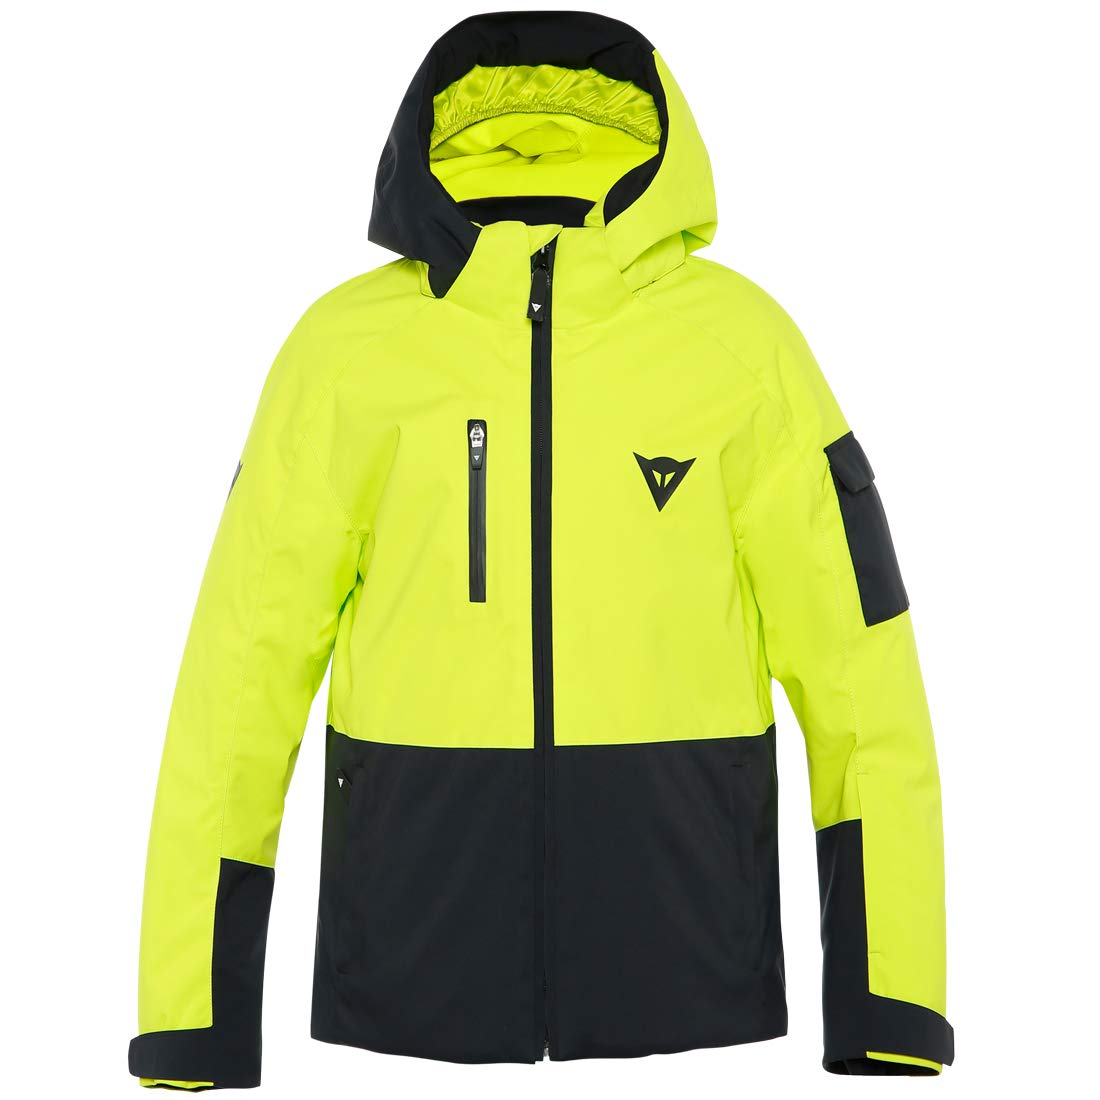 DAINESE(ダイネーゼ) RIBBO HP JACKET 4520022 58B - STRETCH-LIMO/LIME-PUNCH 164